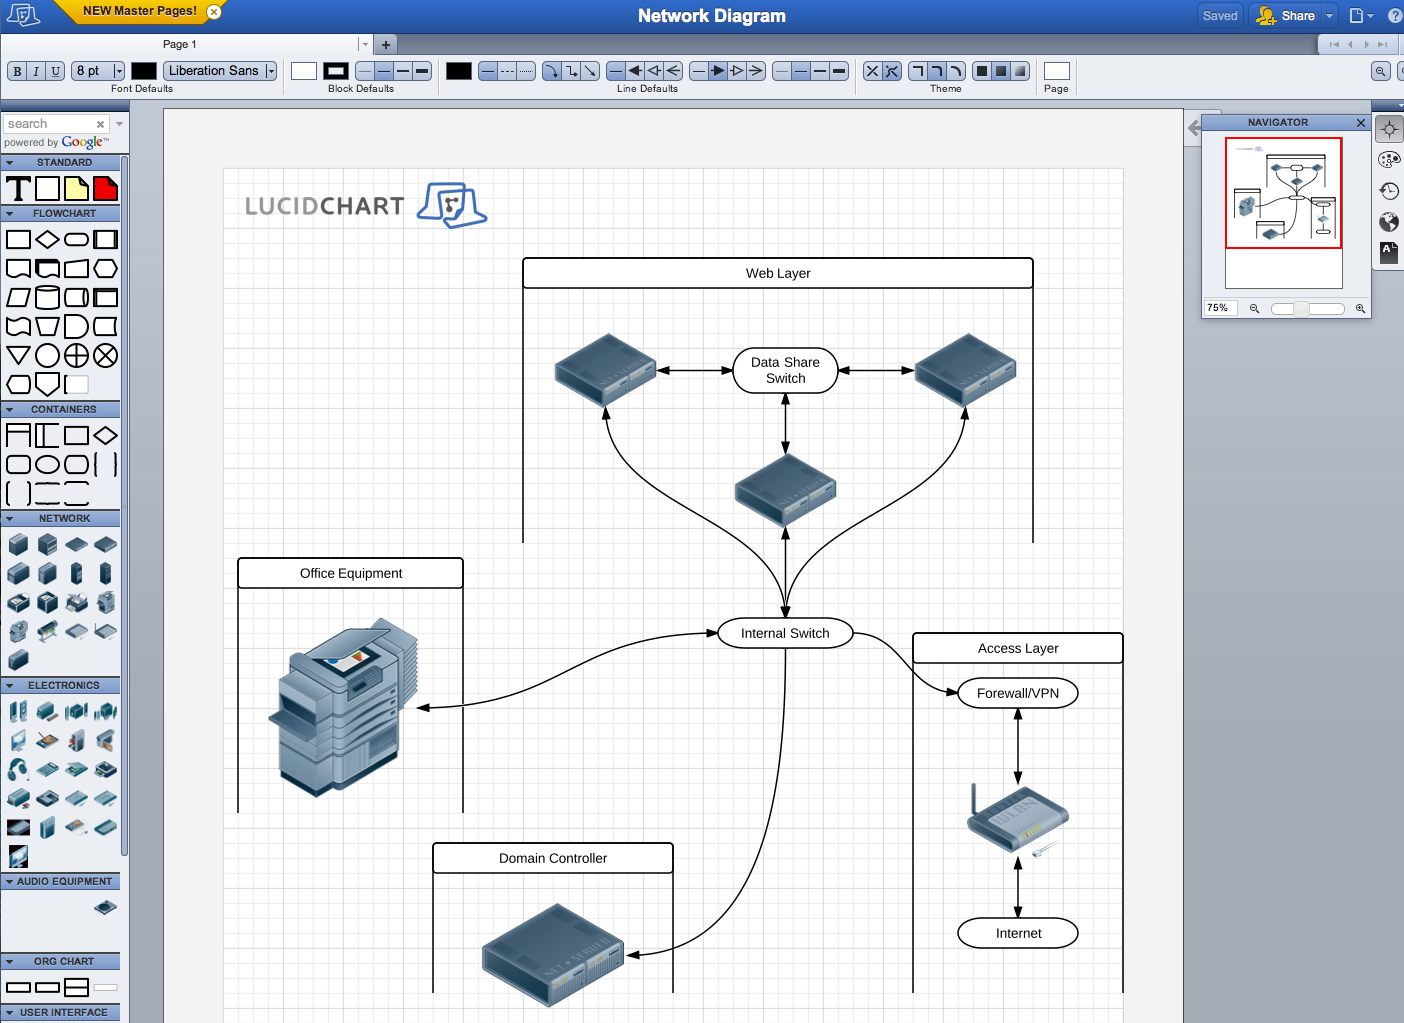 Lucidchart steps up online business diagrams pcworld for Ip camera design tool